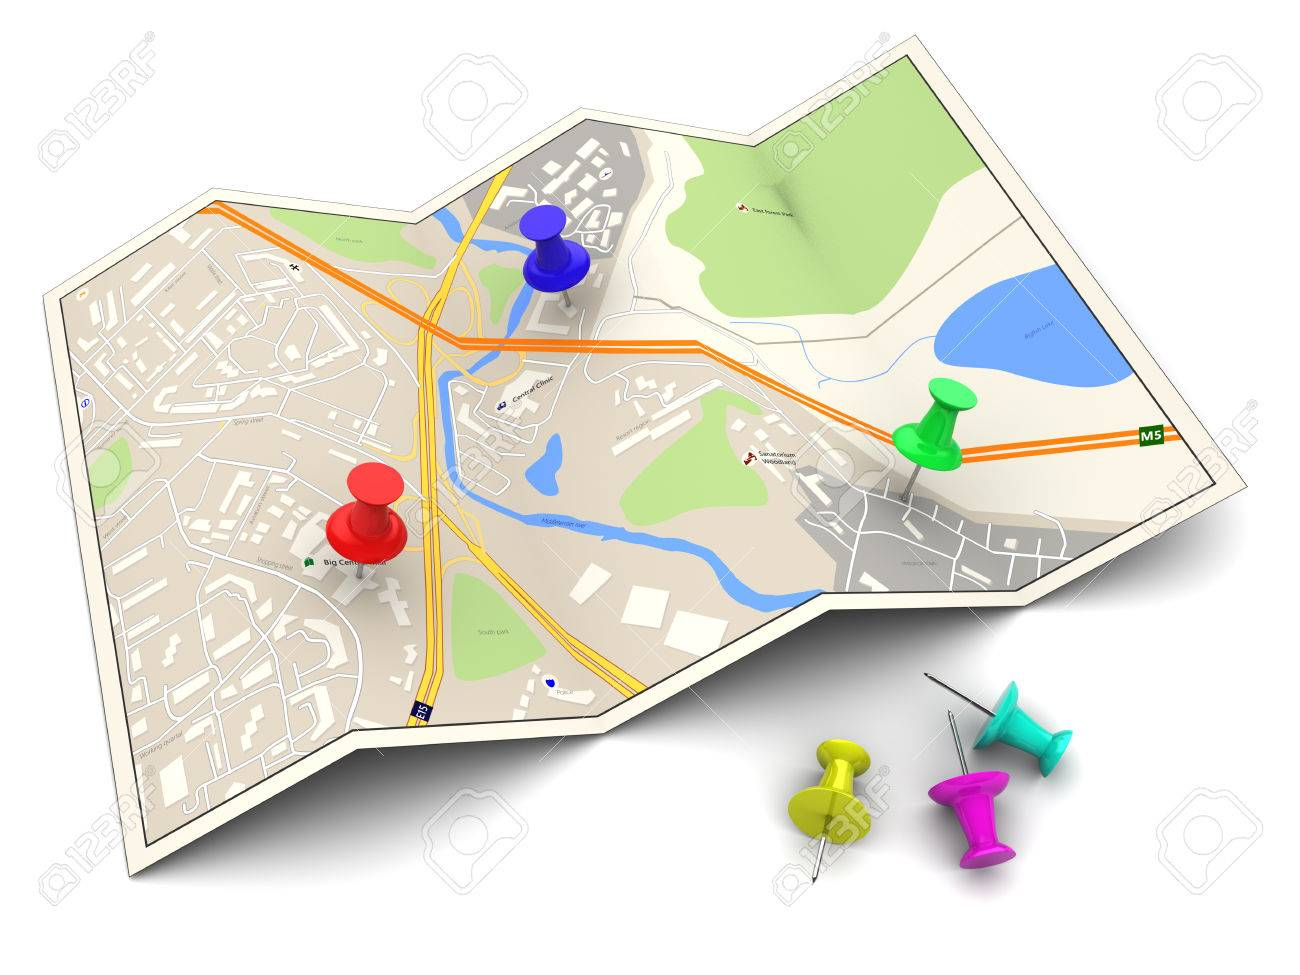 3d illustration of city map with colorful pins - 46636002